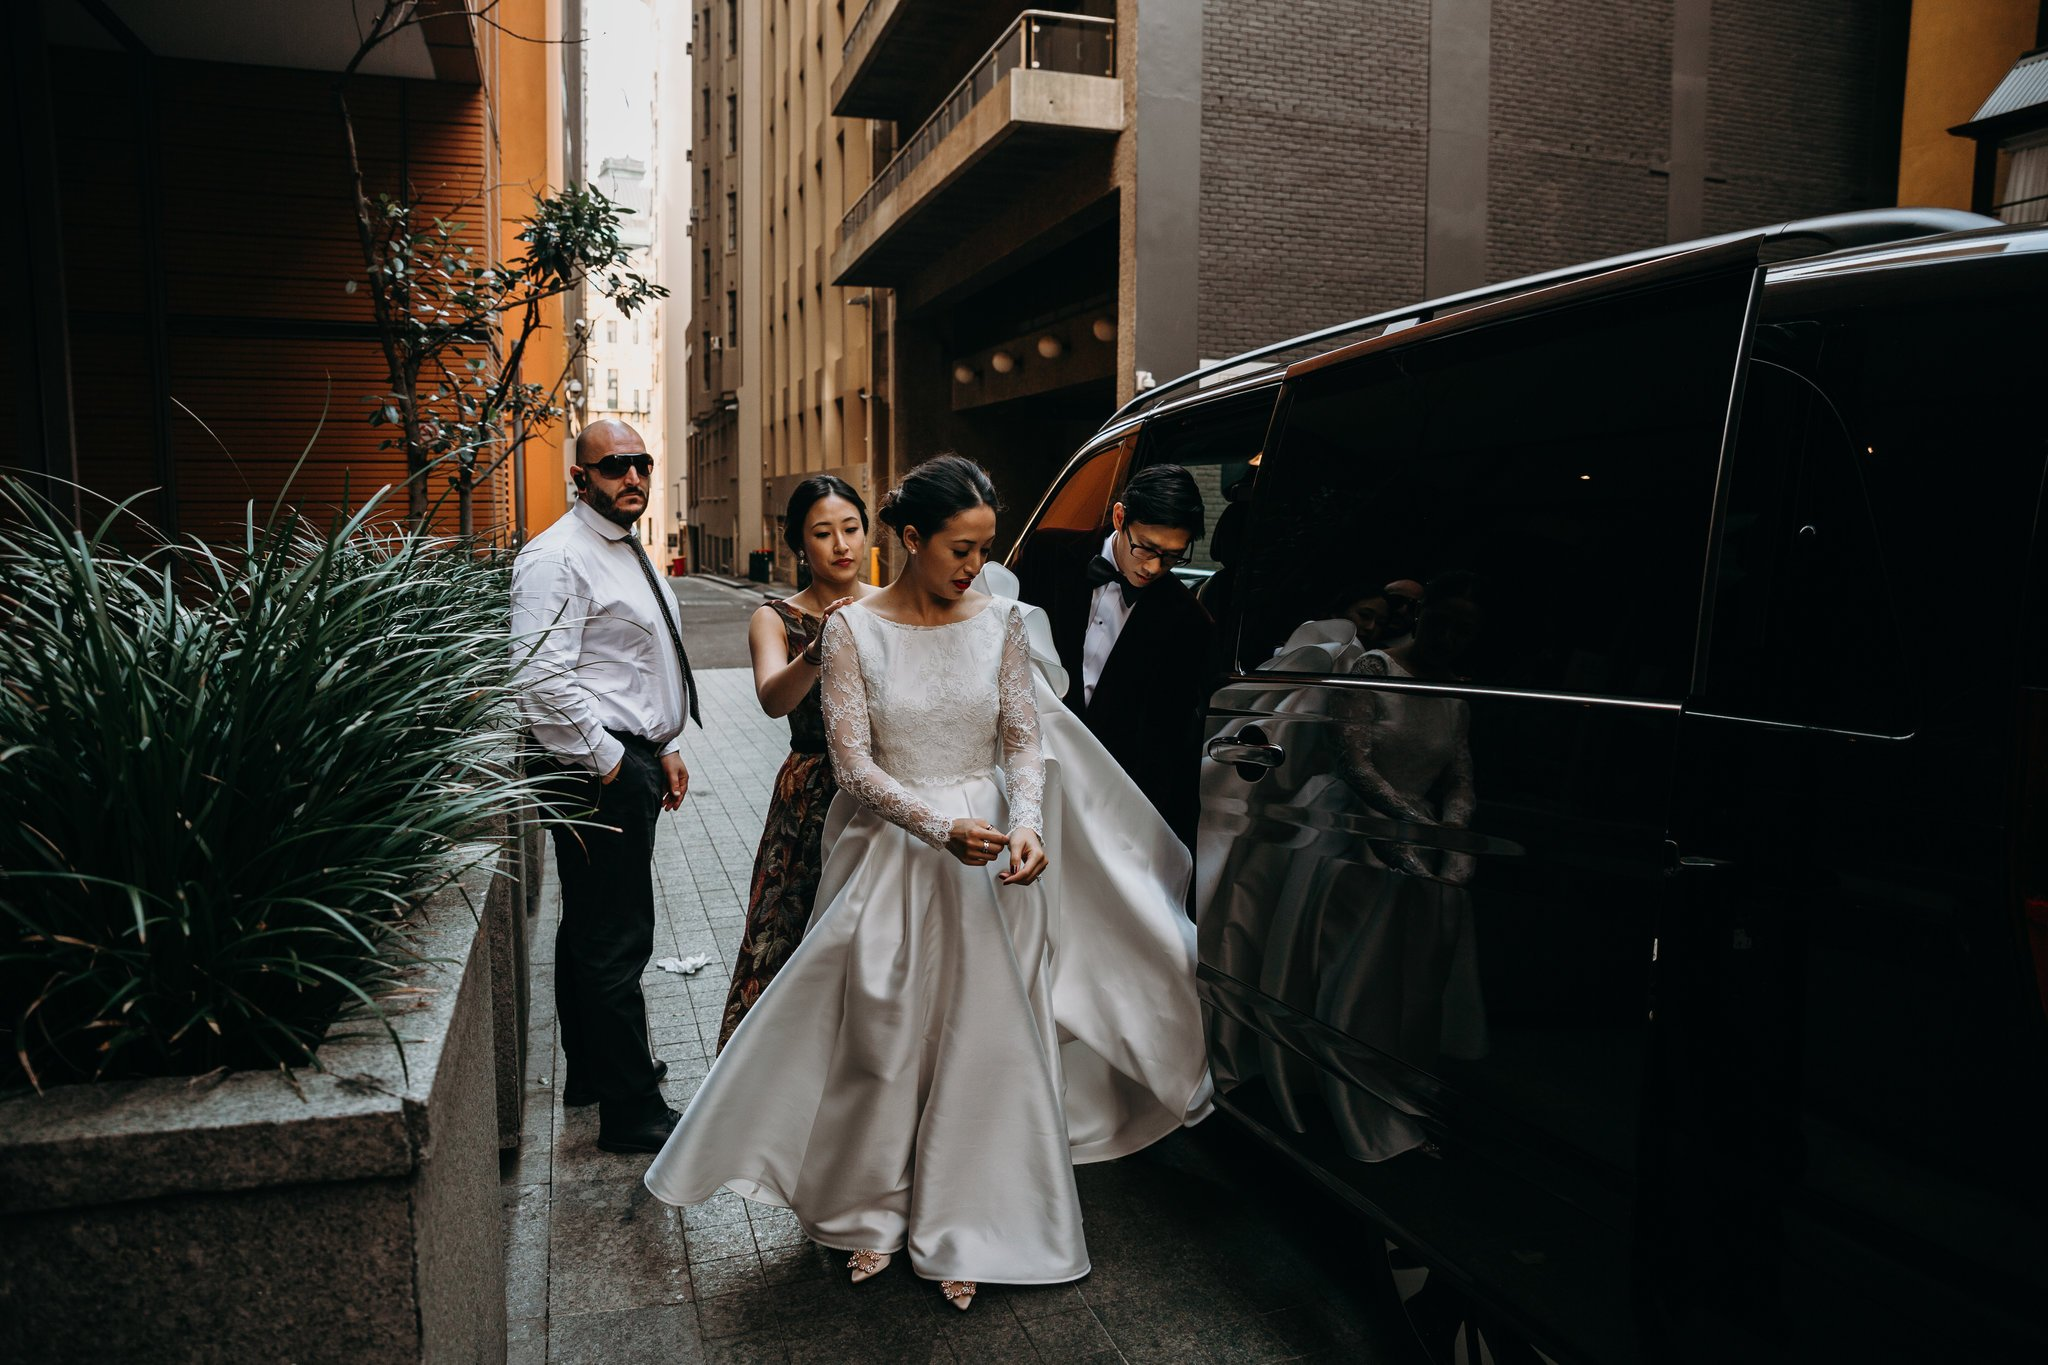 bride and groom arriving together